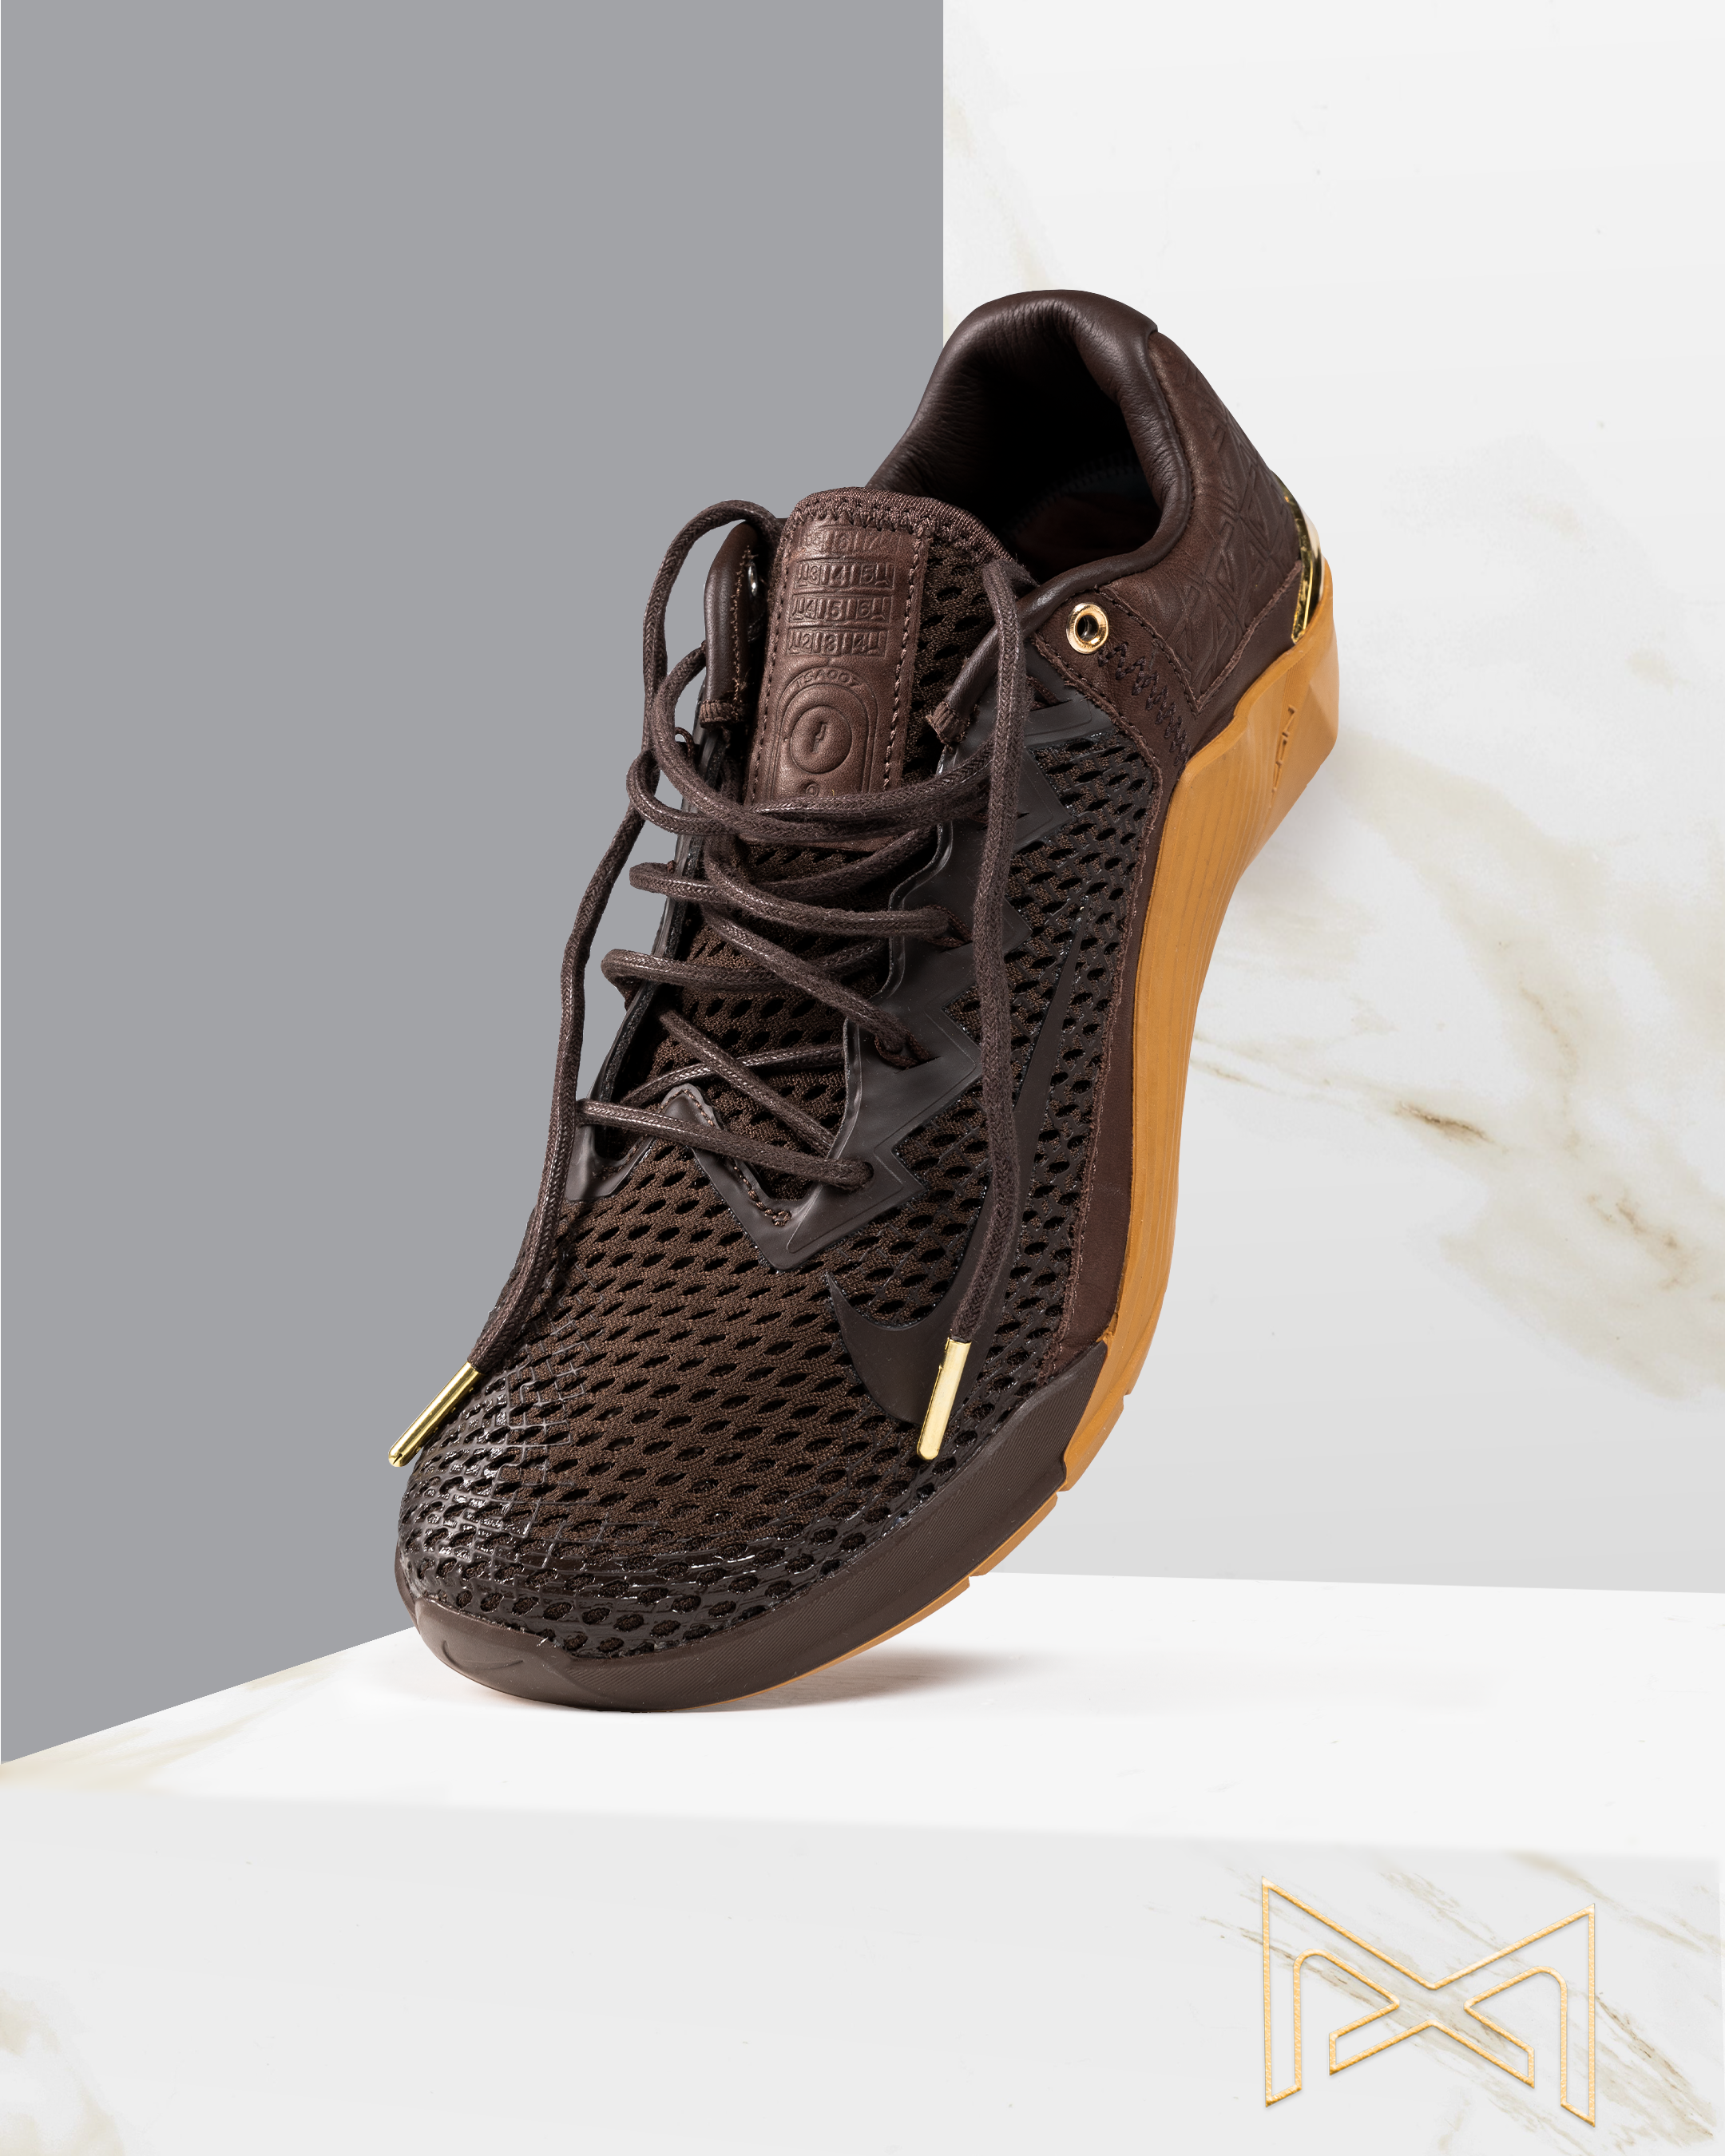 The nike metcon 6 luxe edition adds a touch of luxury to the daily dealings of the training obsessed.